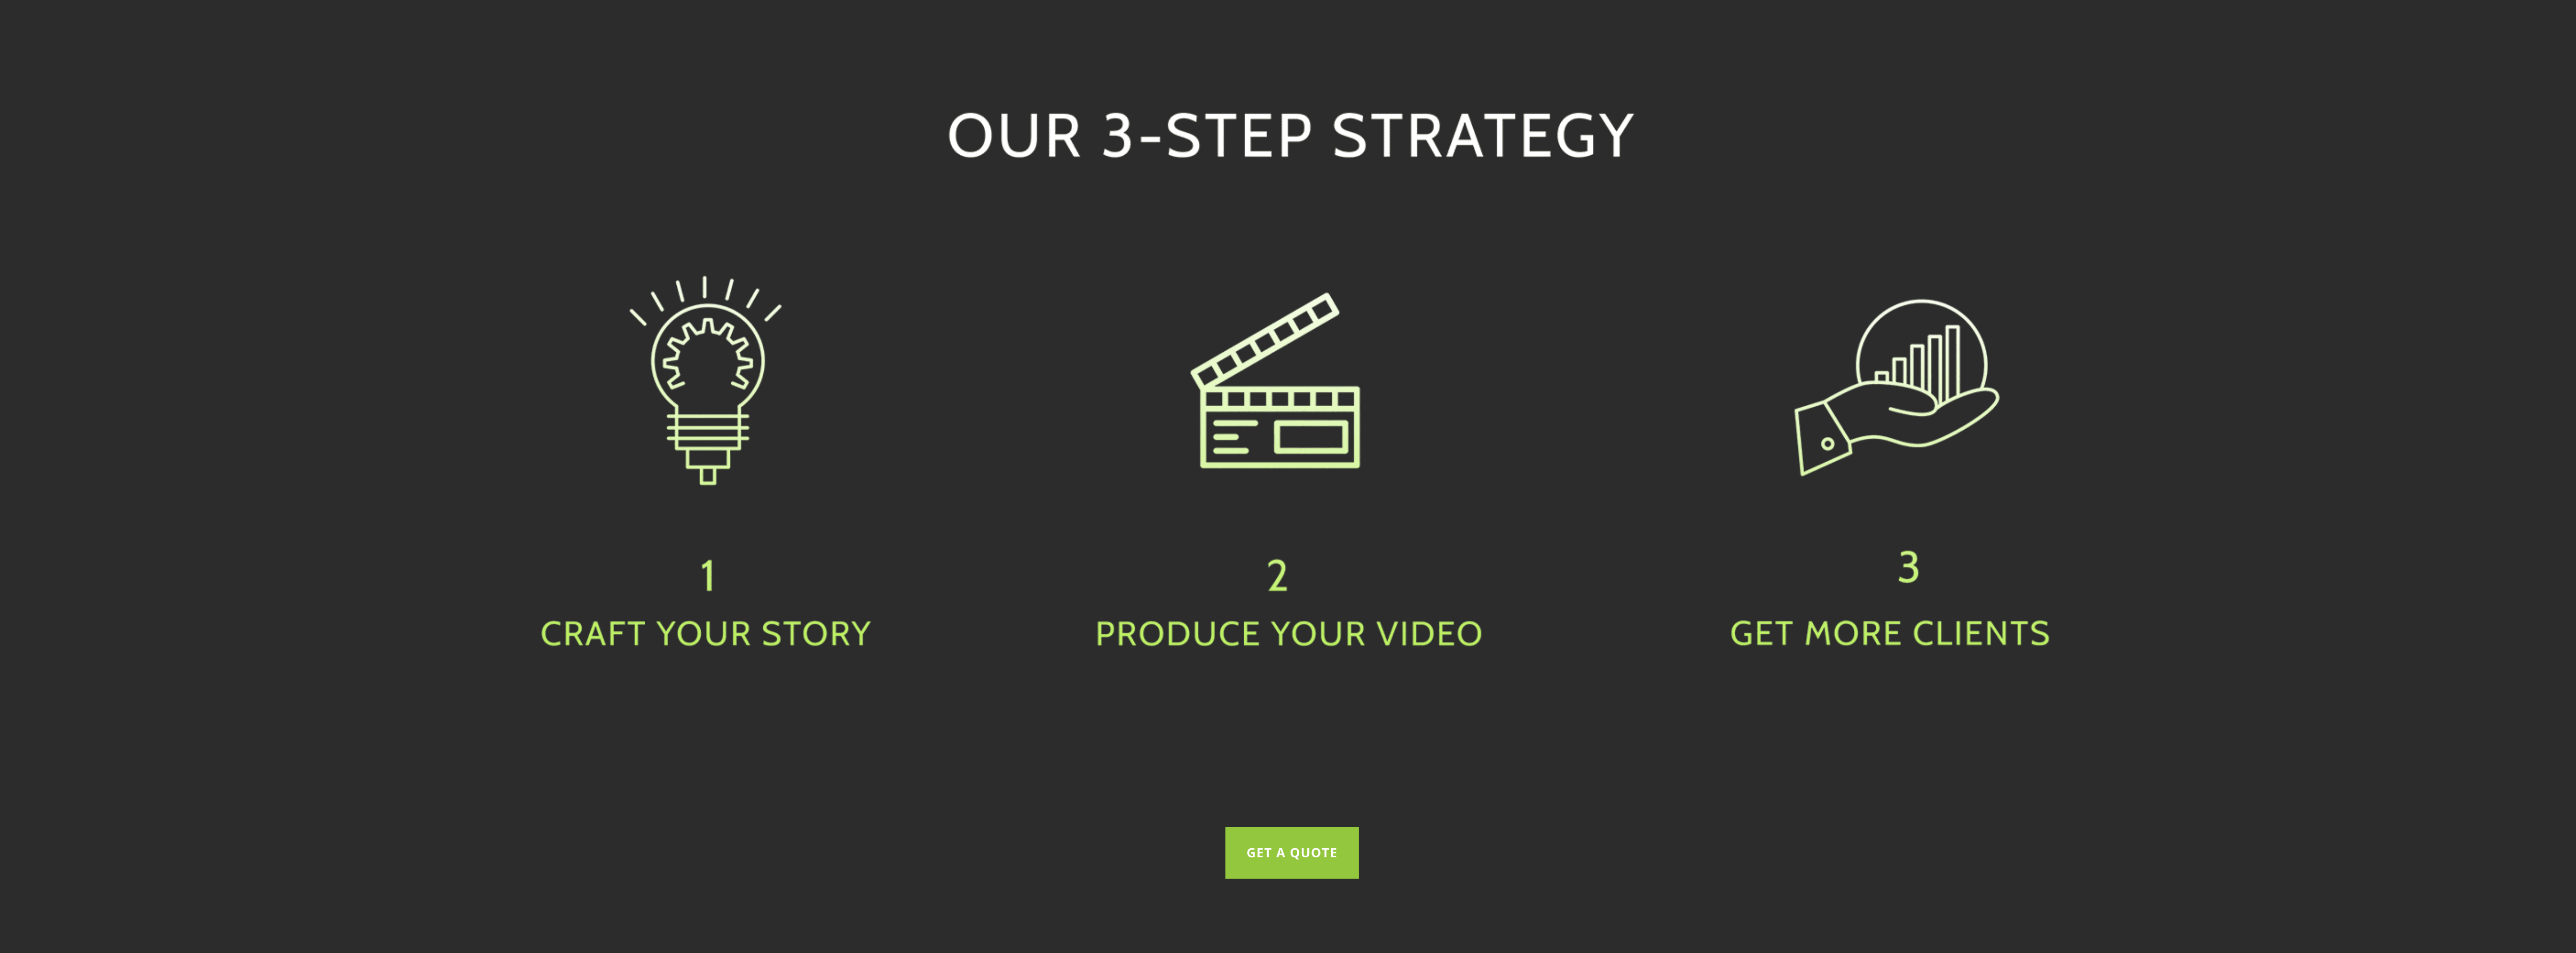 an image with 3 separate icons as steps to achieve success